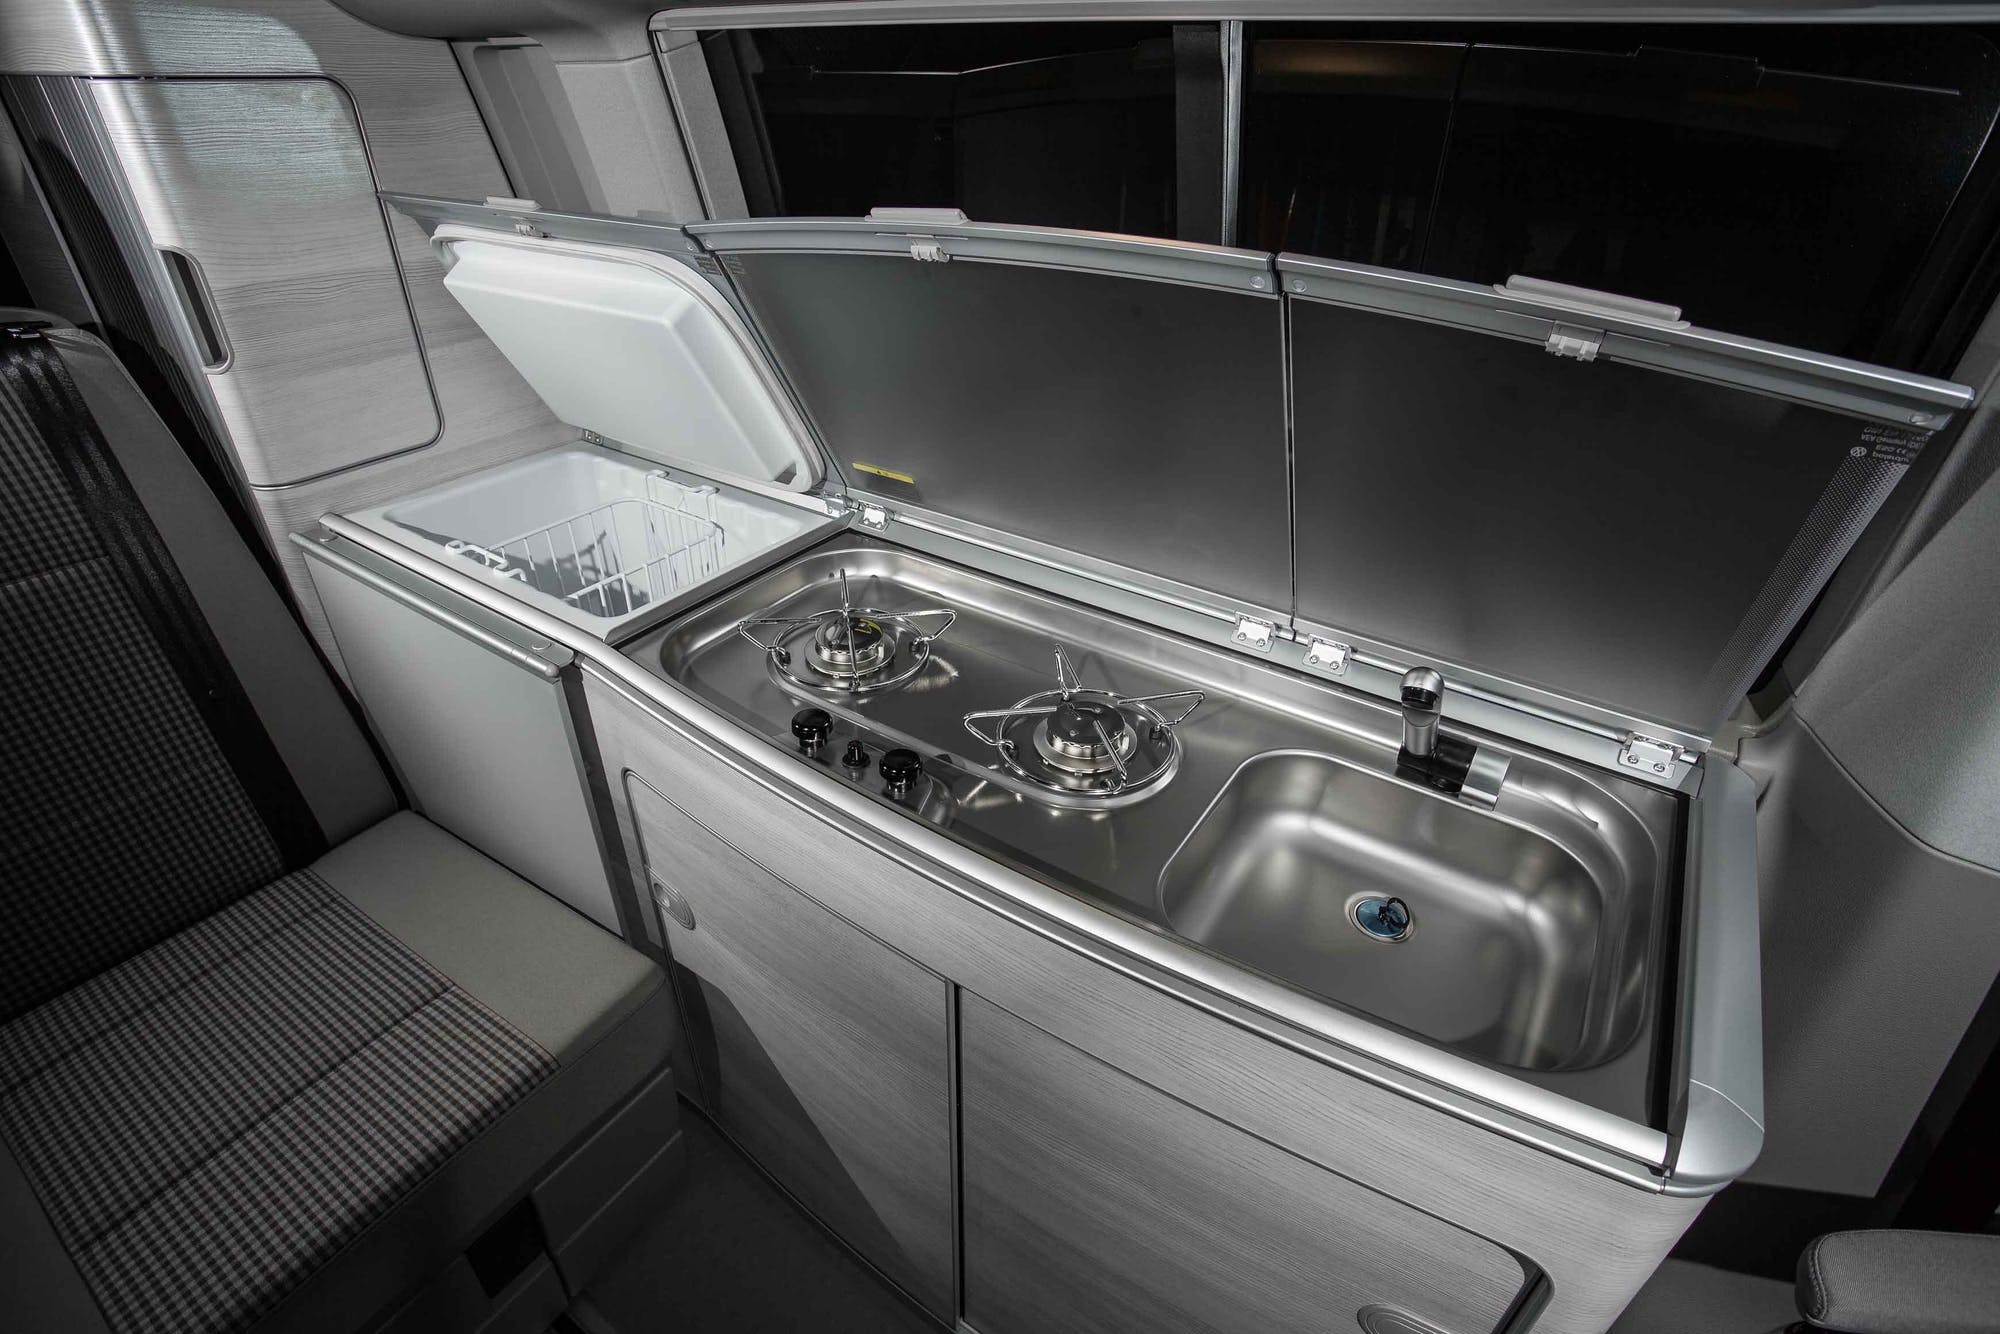 VW California Model's kitchen